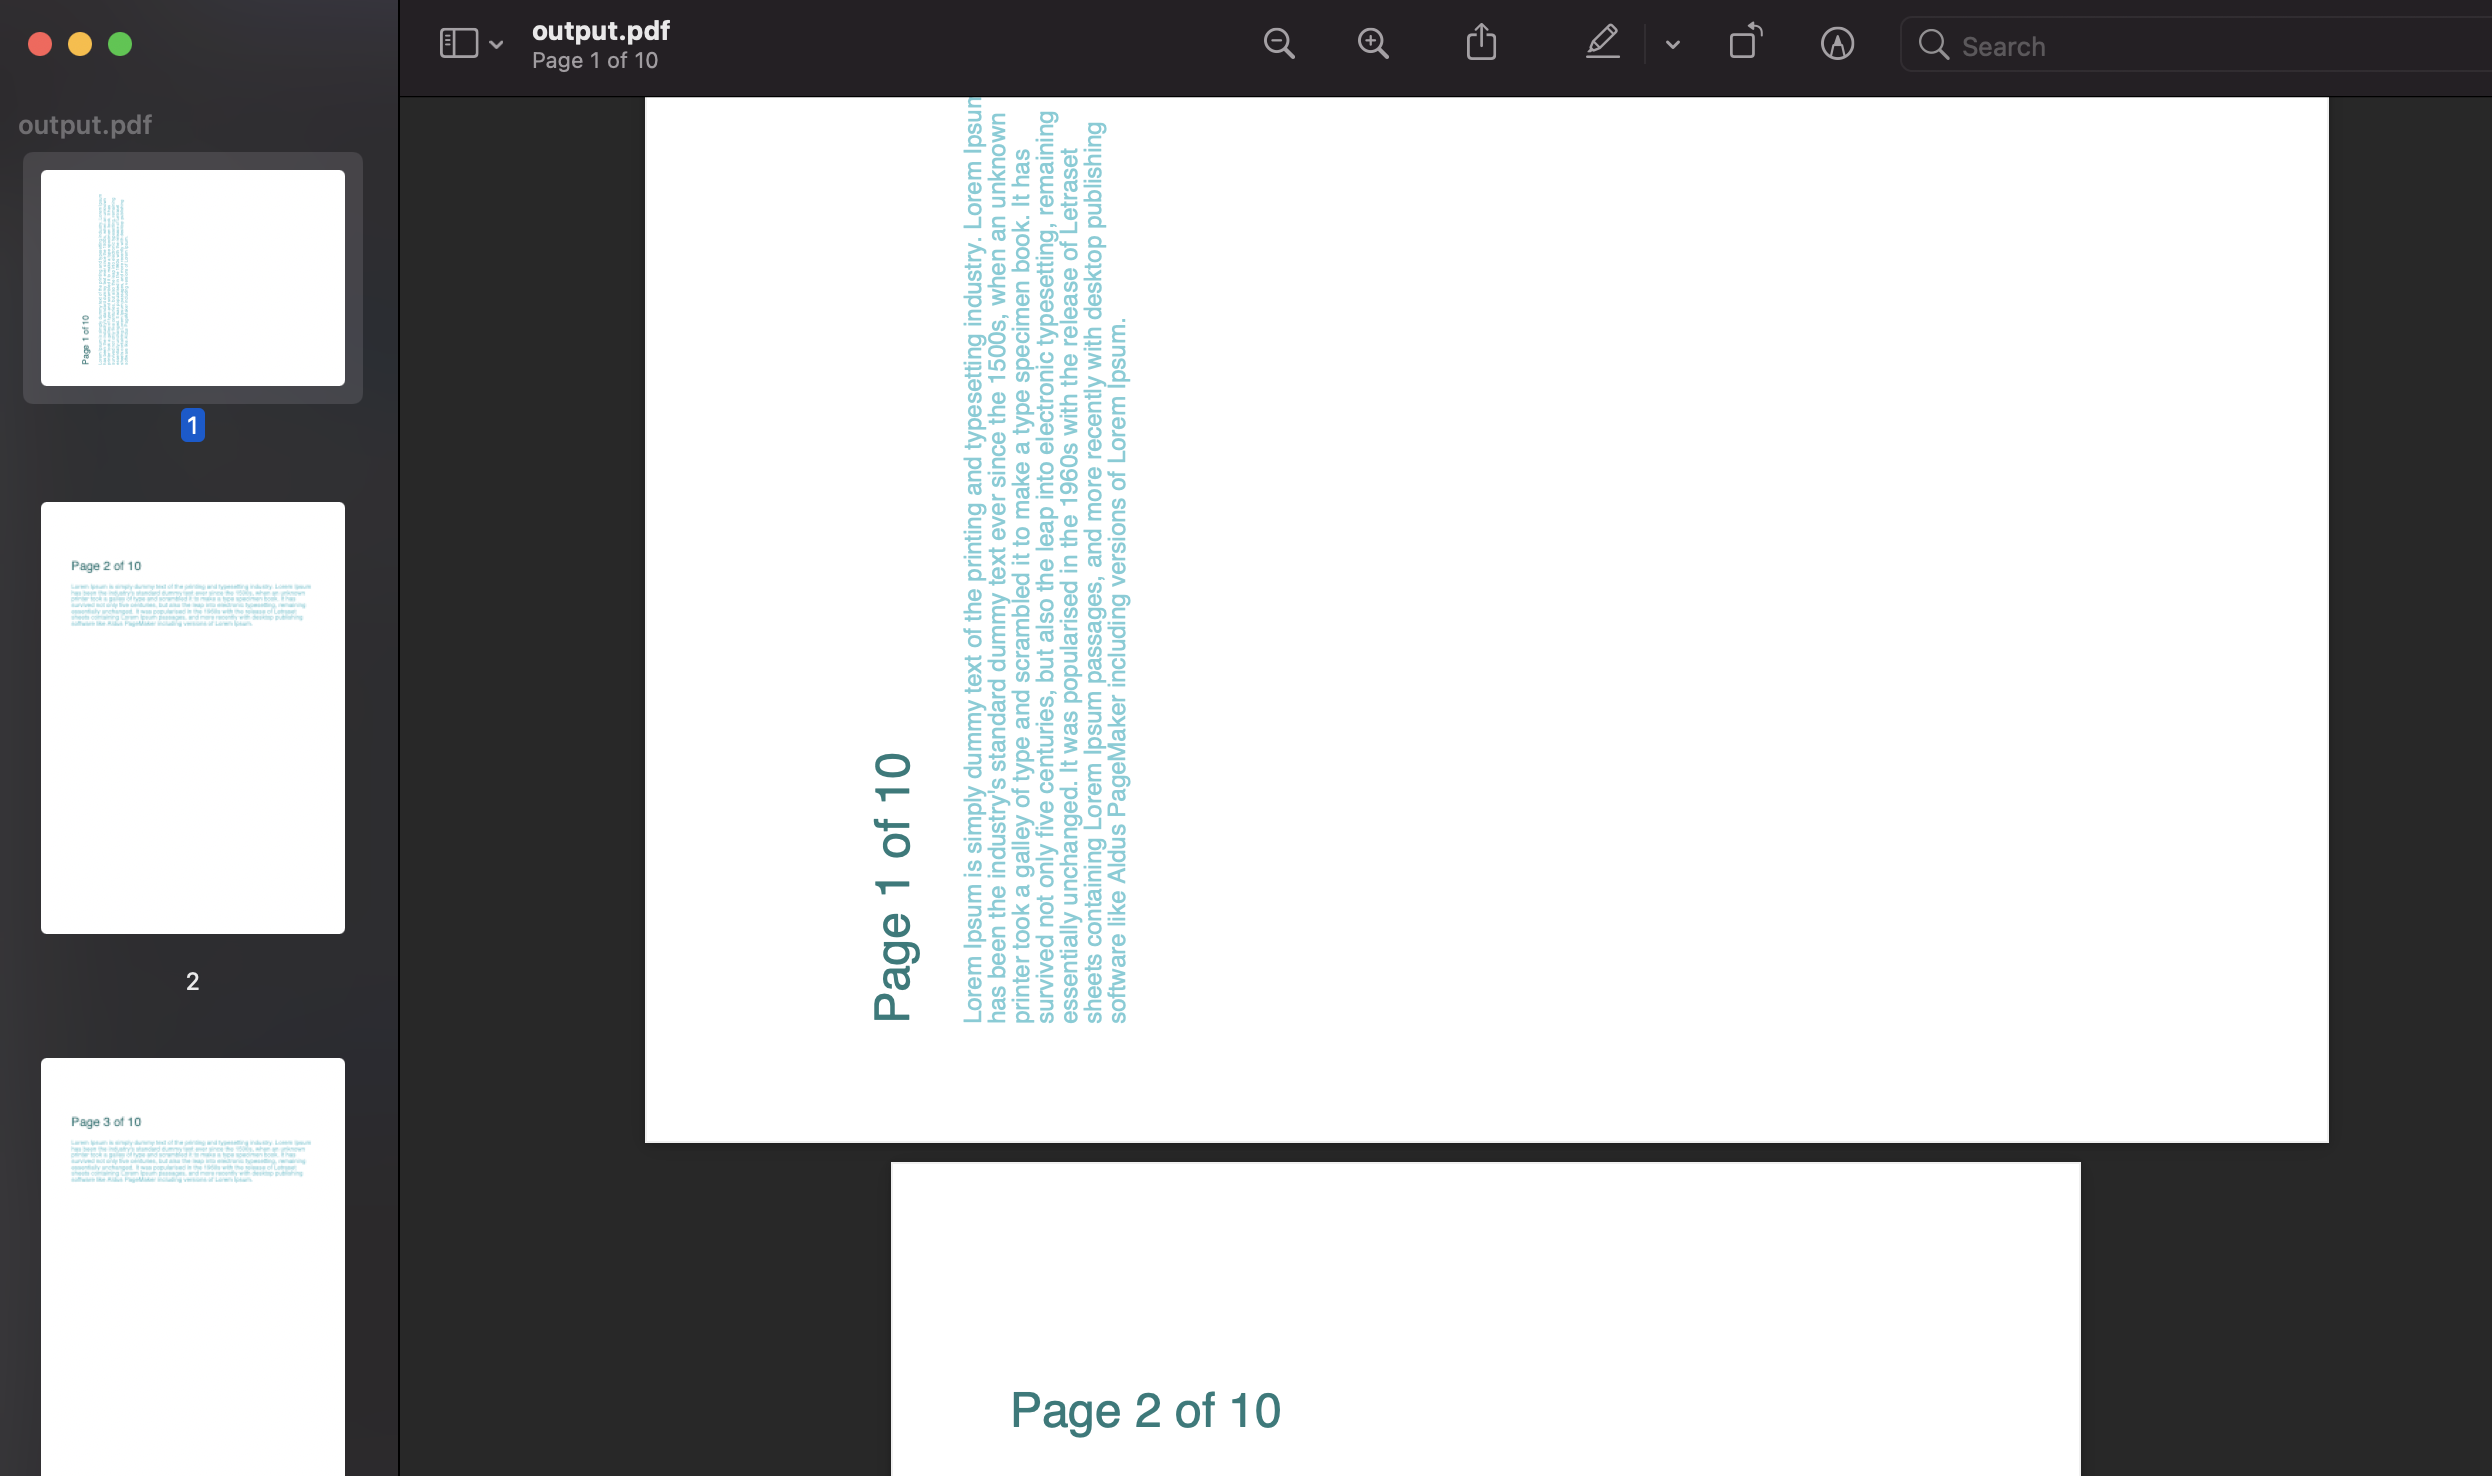 rotating pages of pdf documents in python